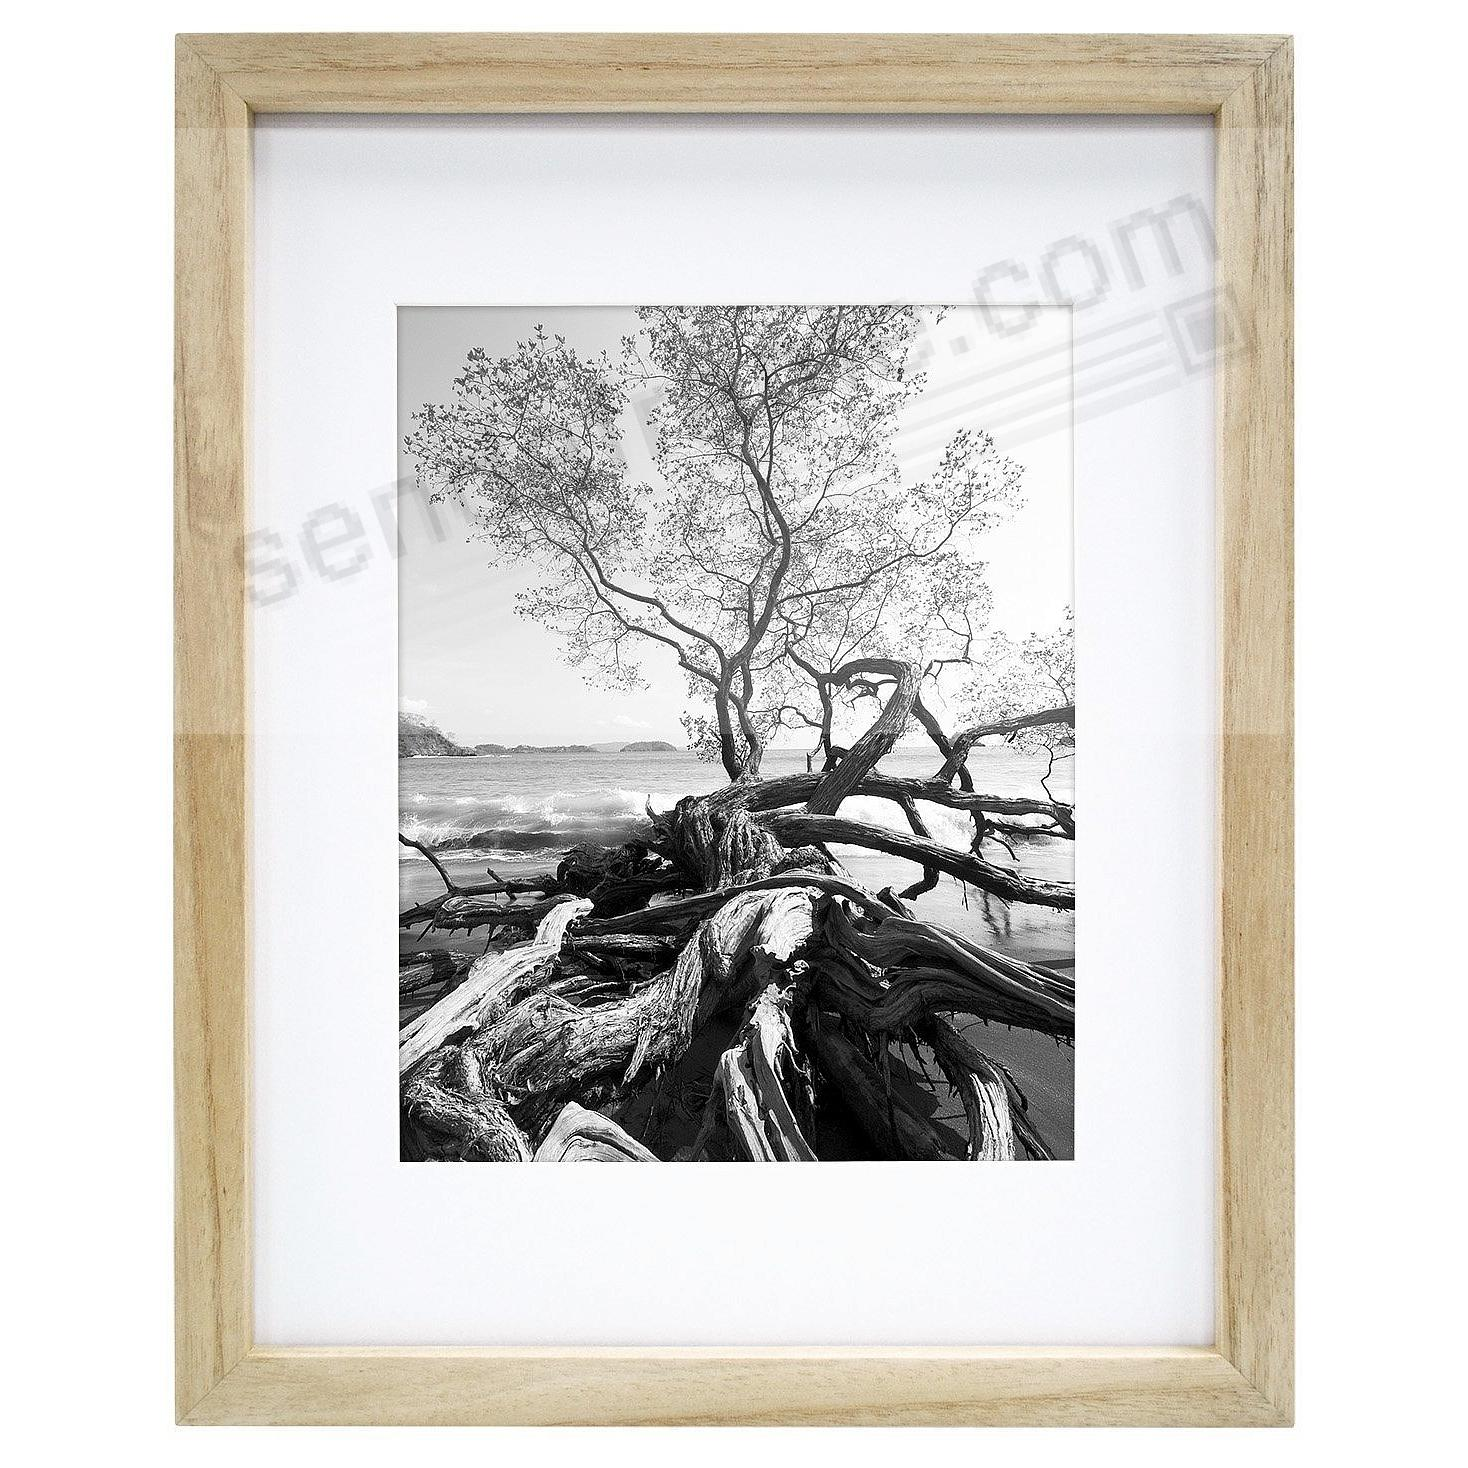 Picture frames photo albums personalized and engraved digital art shadowbox frac34in depth natural wood 9x126x8 frame by mcsreg jeuxipadfo Image collections